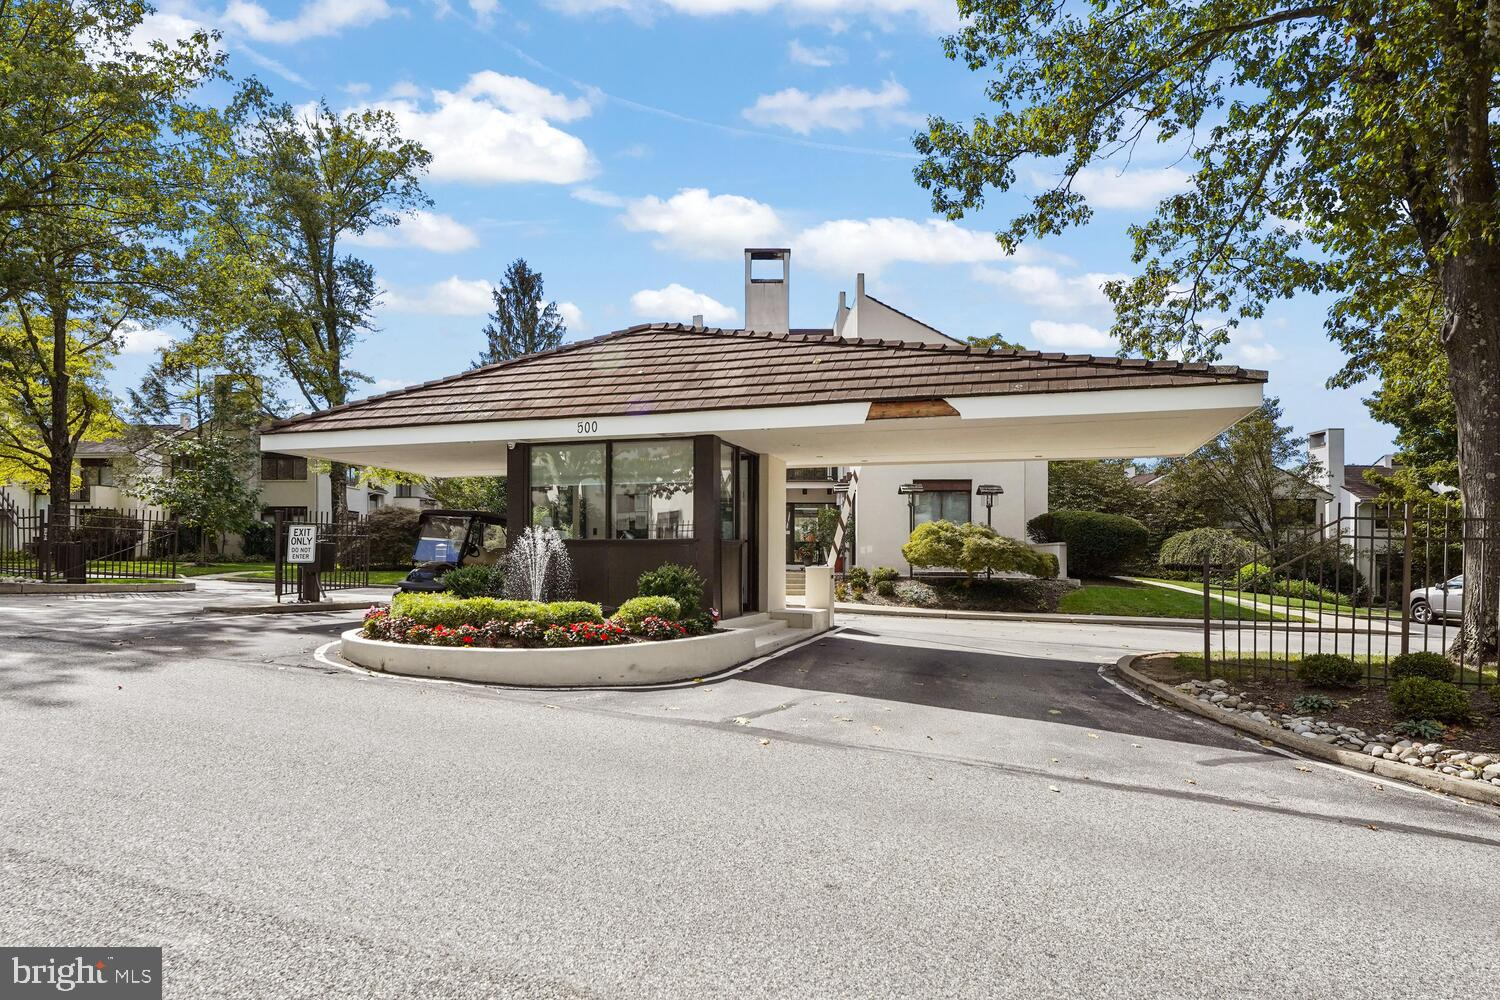 Welcome to the best of Arbordeau!   APPRAISED  IN 2021  for $550 000. 00.    3-bedroom flat plus  Library, with build in shelves and cabinets,  and  2.5 bath. 2nd floor home is very bright, airy and meticulously maintained.  Classic center hall design  with parquet  floring provides a wonderful flow. Lovely 3-directional views from the four exterior balconies.  Includes:  Completely renovated eat-in kitchen, formal dining room, with pocket doors. Sun drenched living room with fireplace  and Fench Door. Owners bedroom suite has radiant-heated porcelain floors .  Double vanities,  tub and sowers. Monthly fee included 24/7 front gate security/attendant service; a beautiful new swimming pool, clubhouse, and guest rooms for your overnight  guests with discounted price. 2 reserved underground parking spaces, accessible from your residence with personalized private elevator , exterior building and grounds maintenance, on-site management, and many other amenities.  This world class flat is for the discerning few. Appraisal report available to review.